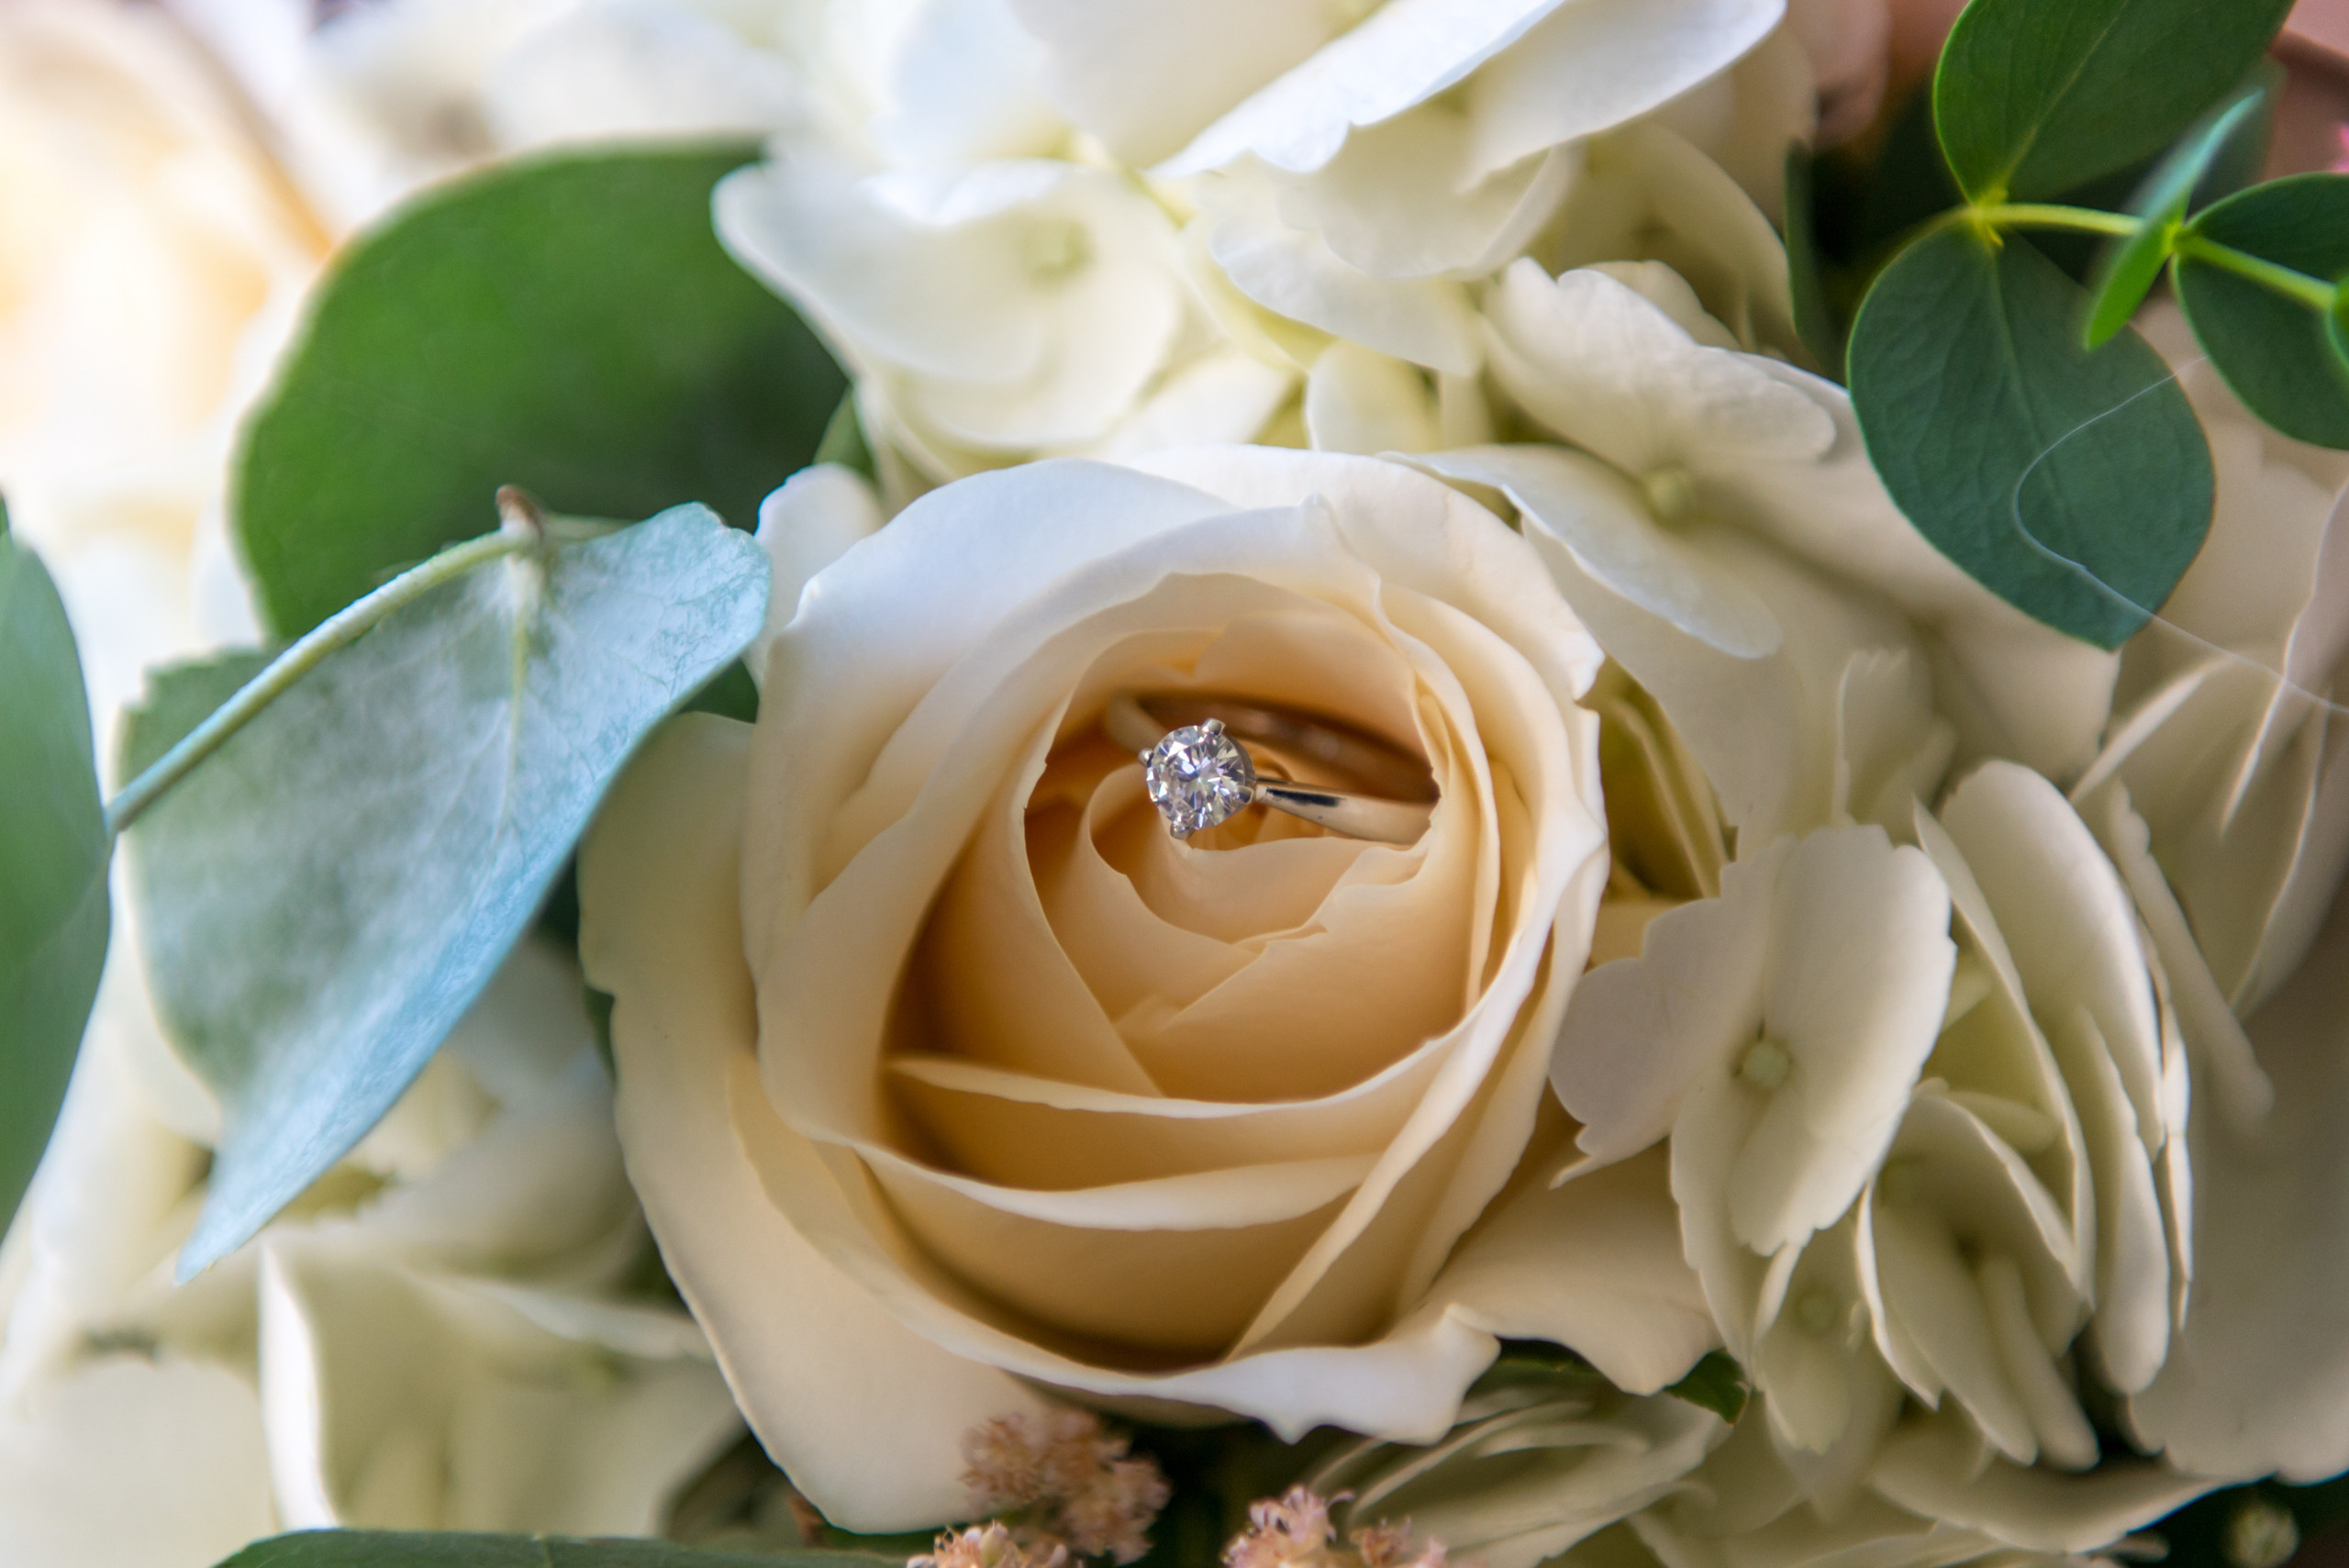 Photo of diamond engagement ring in bride's flower bouquet during wedding day preparations